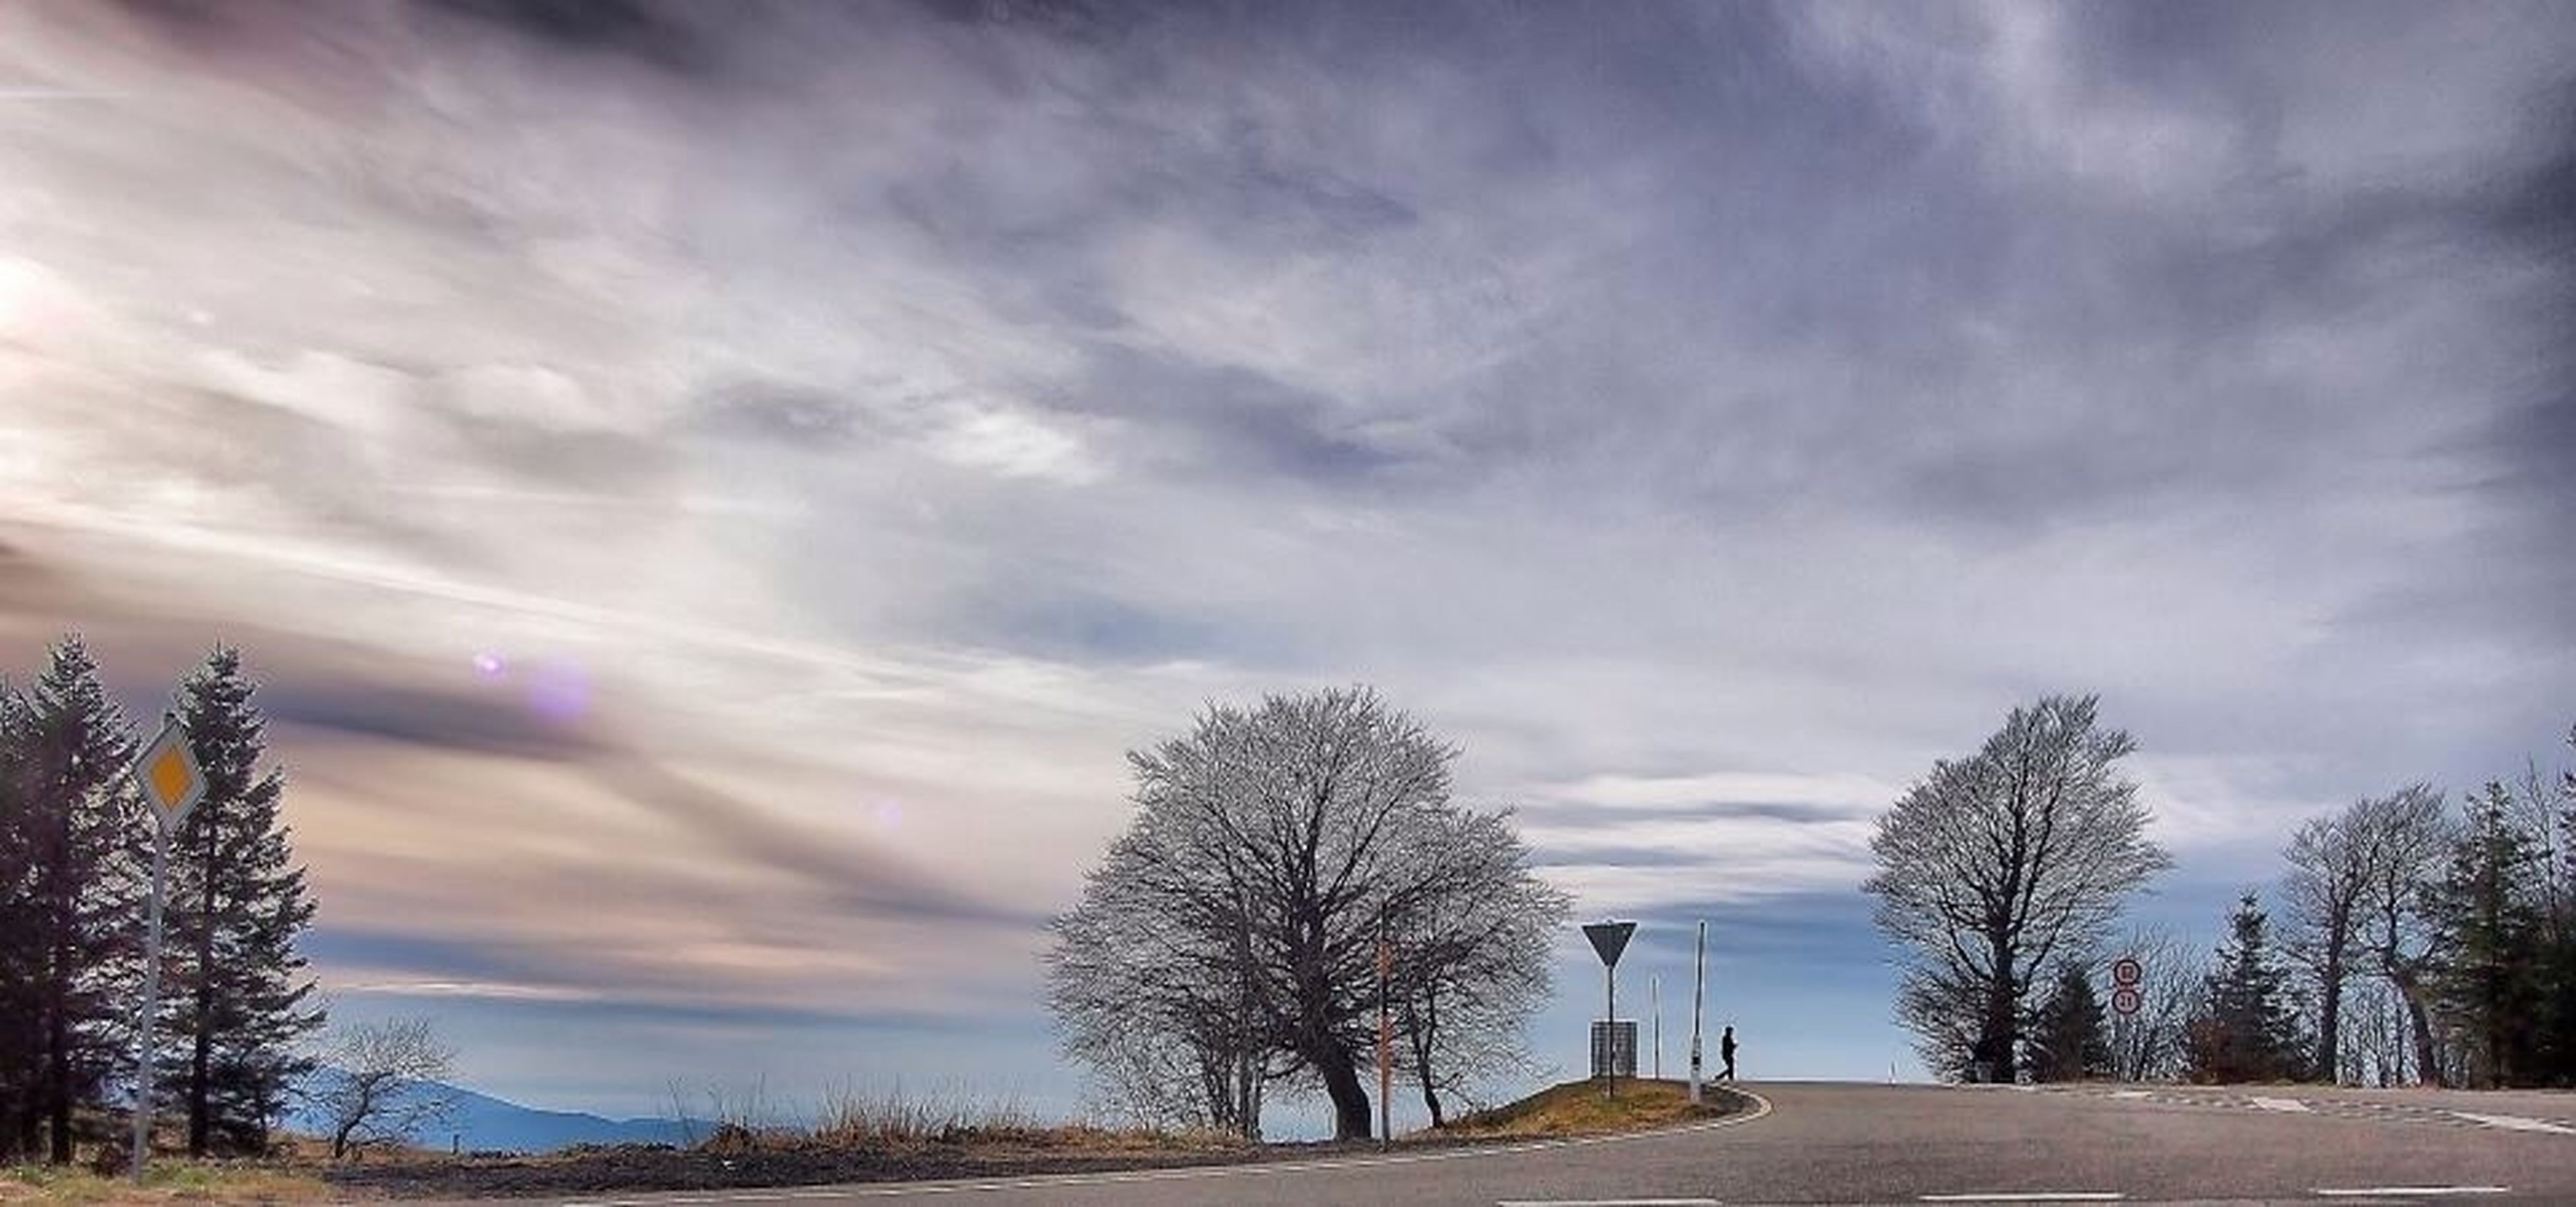 sky, tree, cloud - sky, tranquility, cloudy, tranquil scene, the way forward, bare tree, beauty in nature, scenics, nature, weather, cloud, road, outdoors, landscape, no people, branch, overcast, low angle view